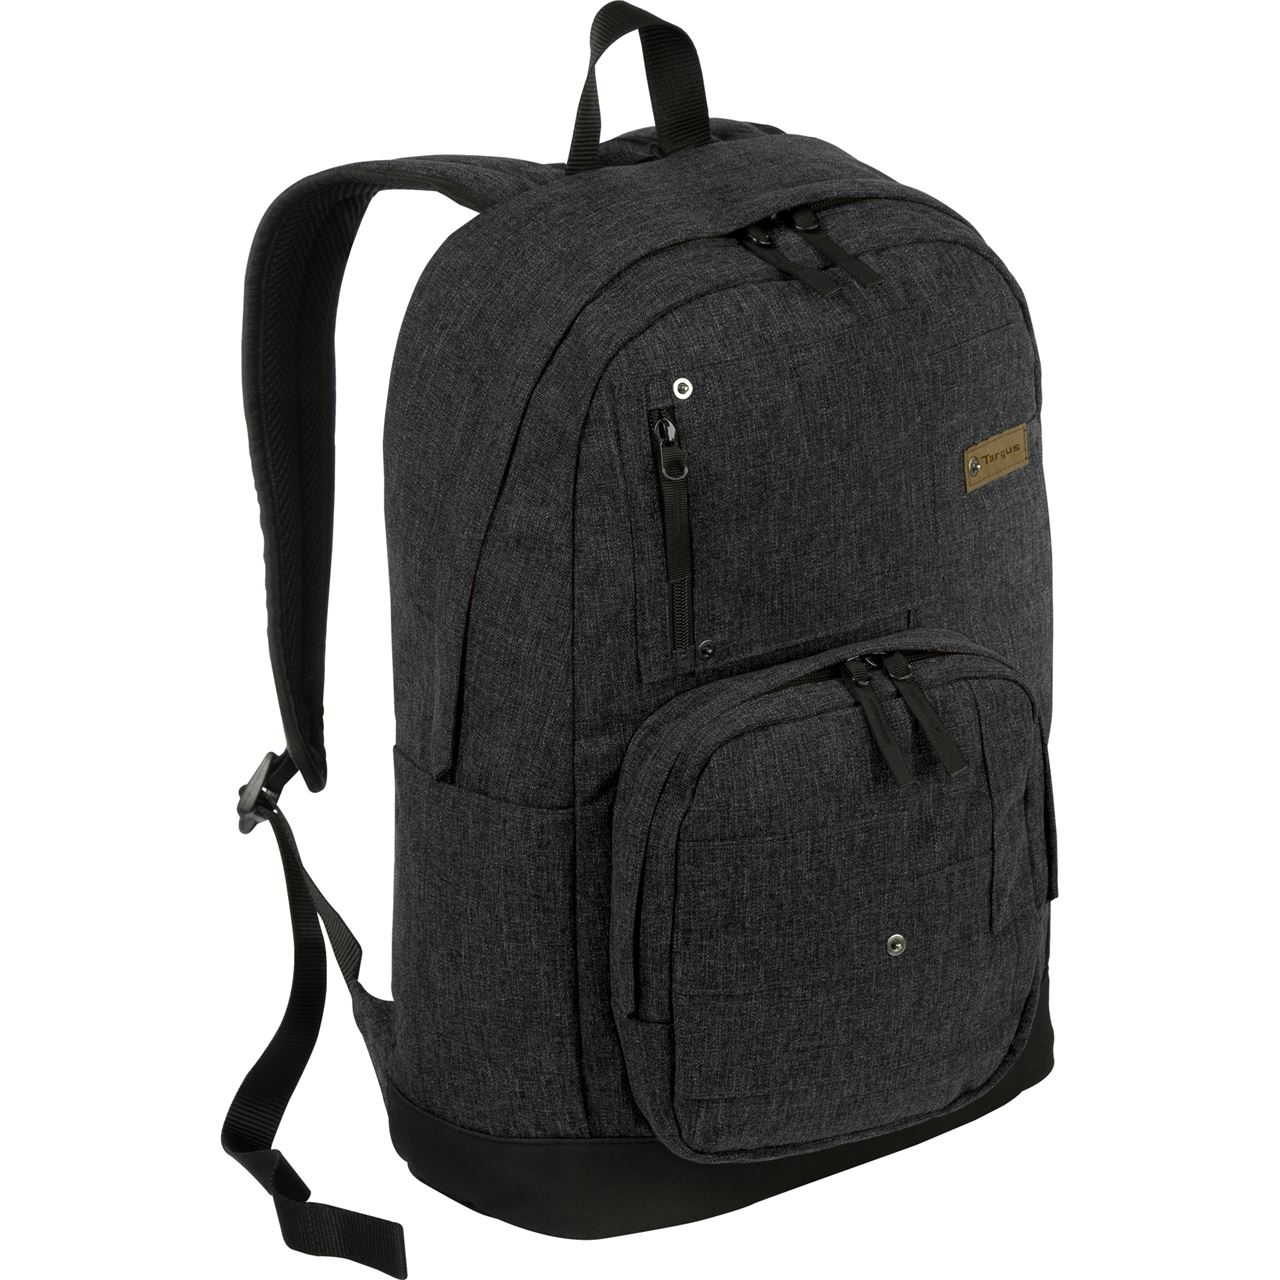 Shop fashion women's backpack online at ZAFUL. Wide range of trendy, cute and cool backpacks with many colors at affordable prices.